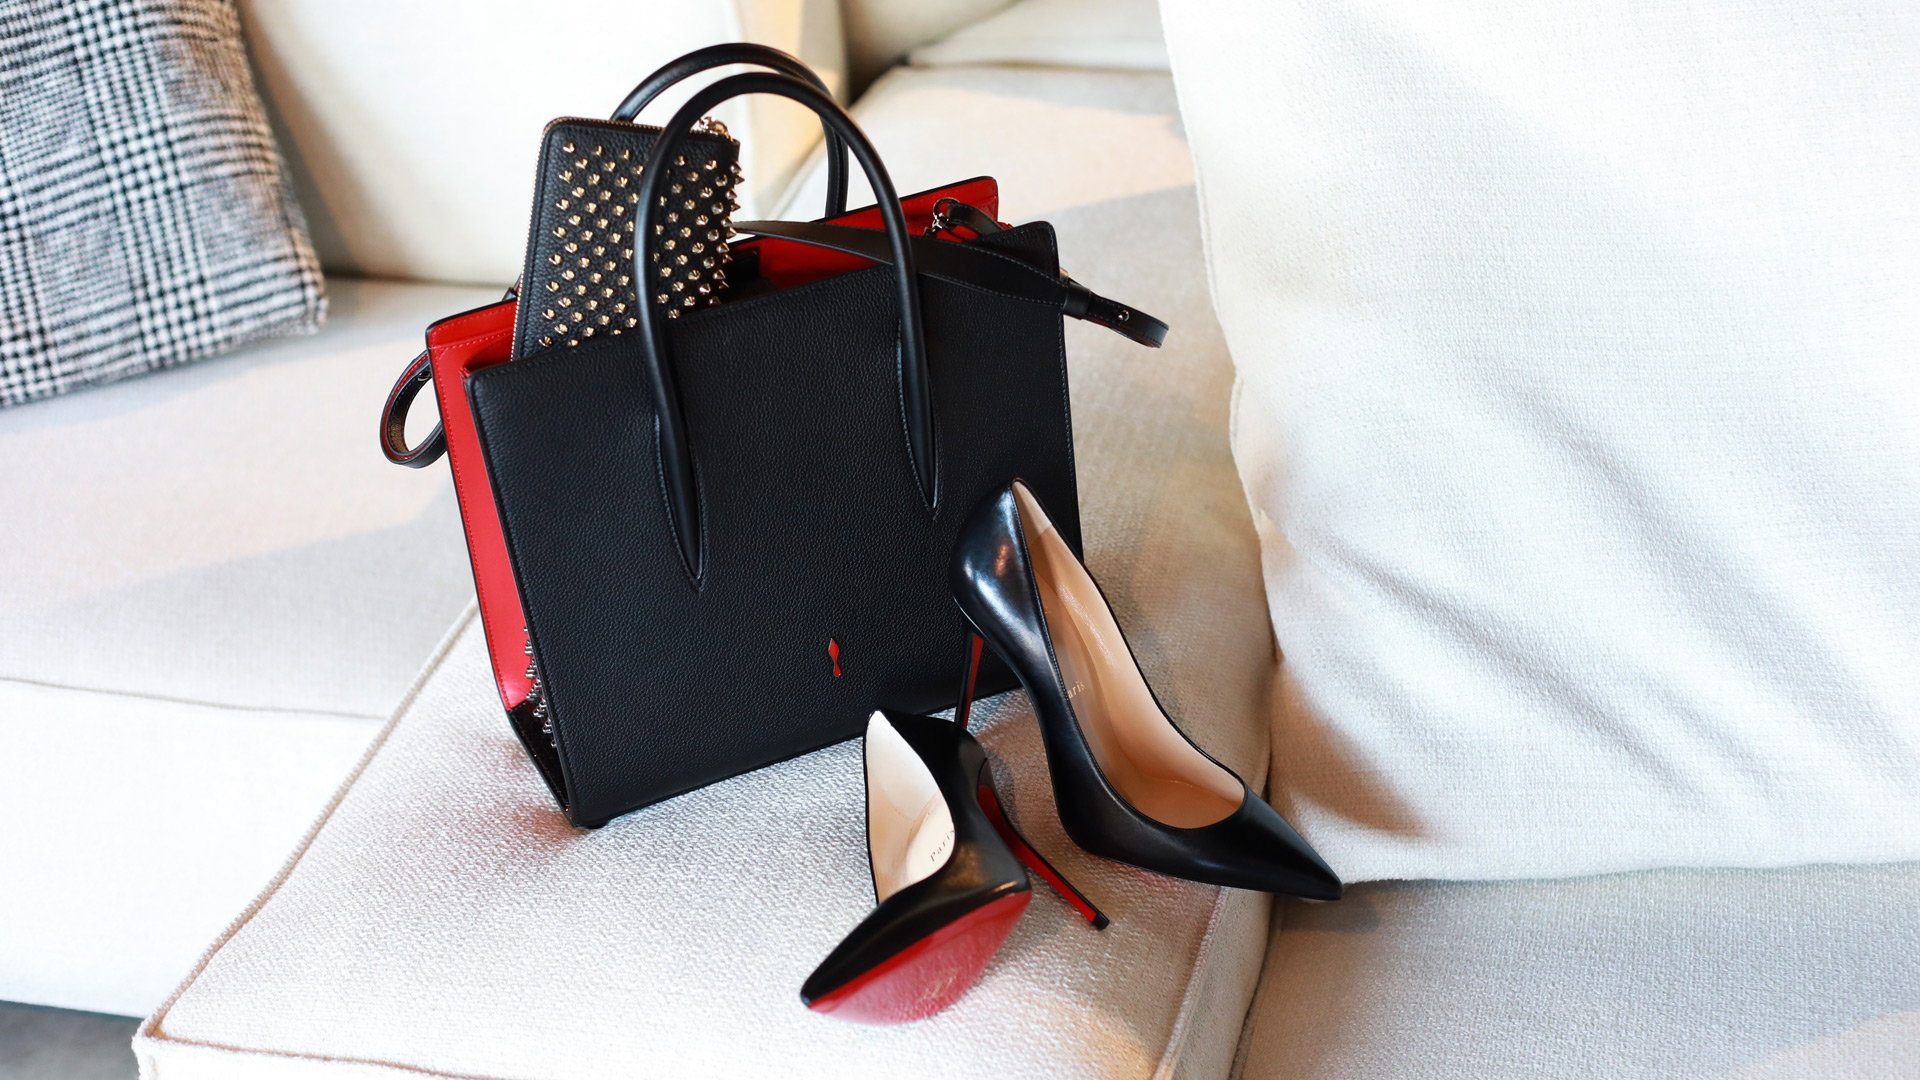 92f9d01568a Home - Kymyka luxury shoes and bags